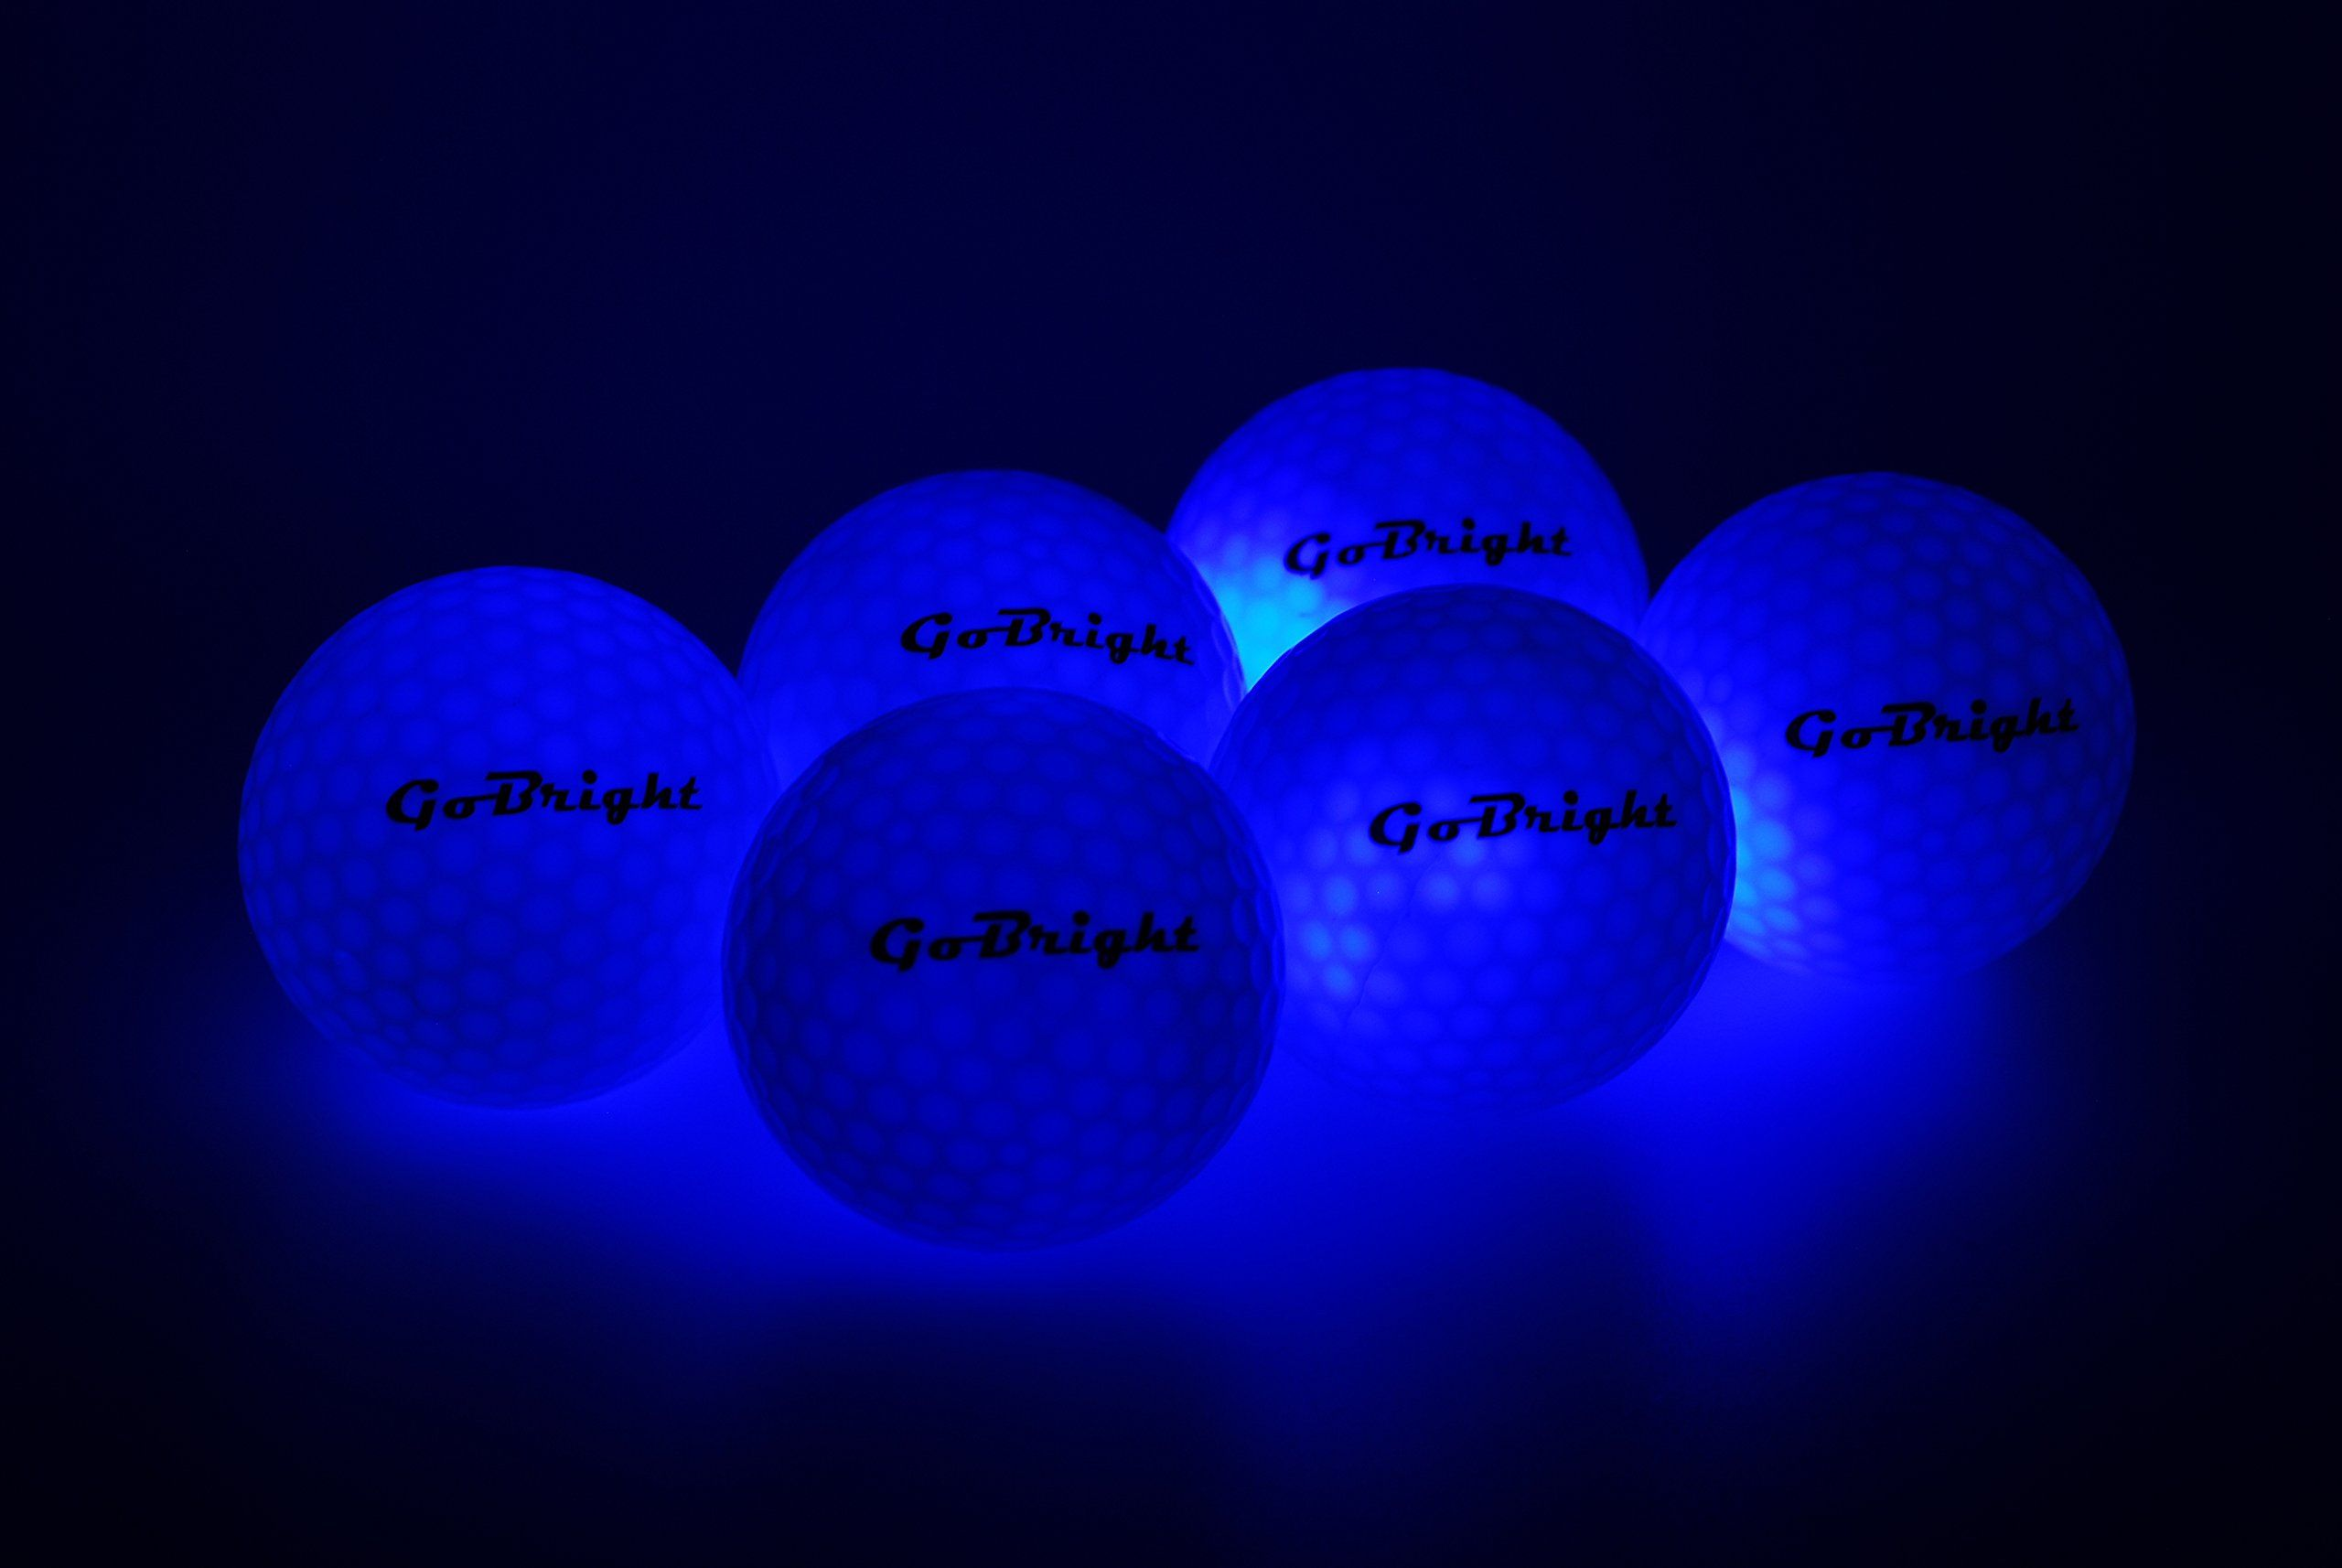 Golf Balls Gobright Blue Led Light Up Golf Balls Ultra Bright Glow In The Dark Night Golf Balls Pack Of 2 Click Pho Blue Led Lights Led Lights Light Up